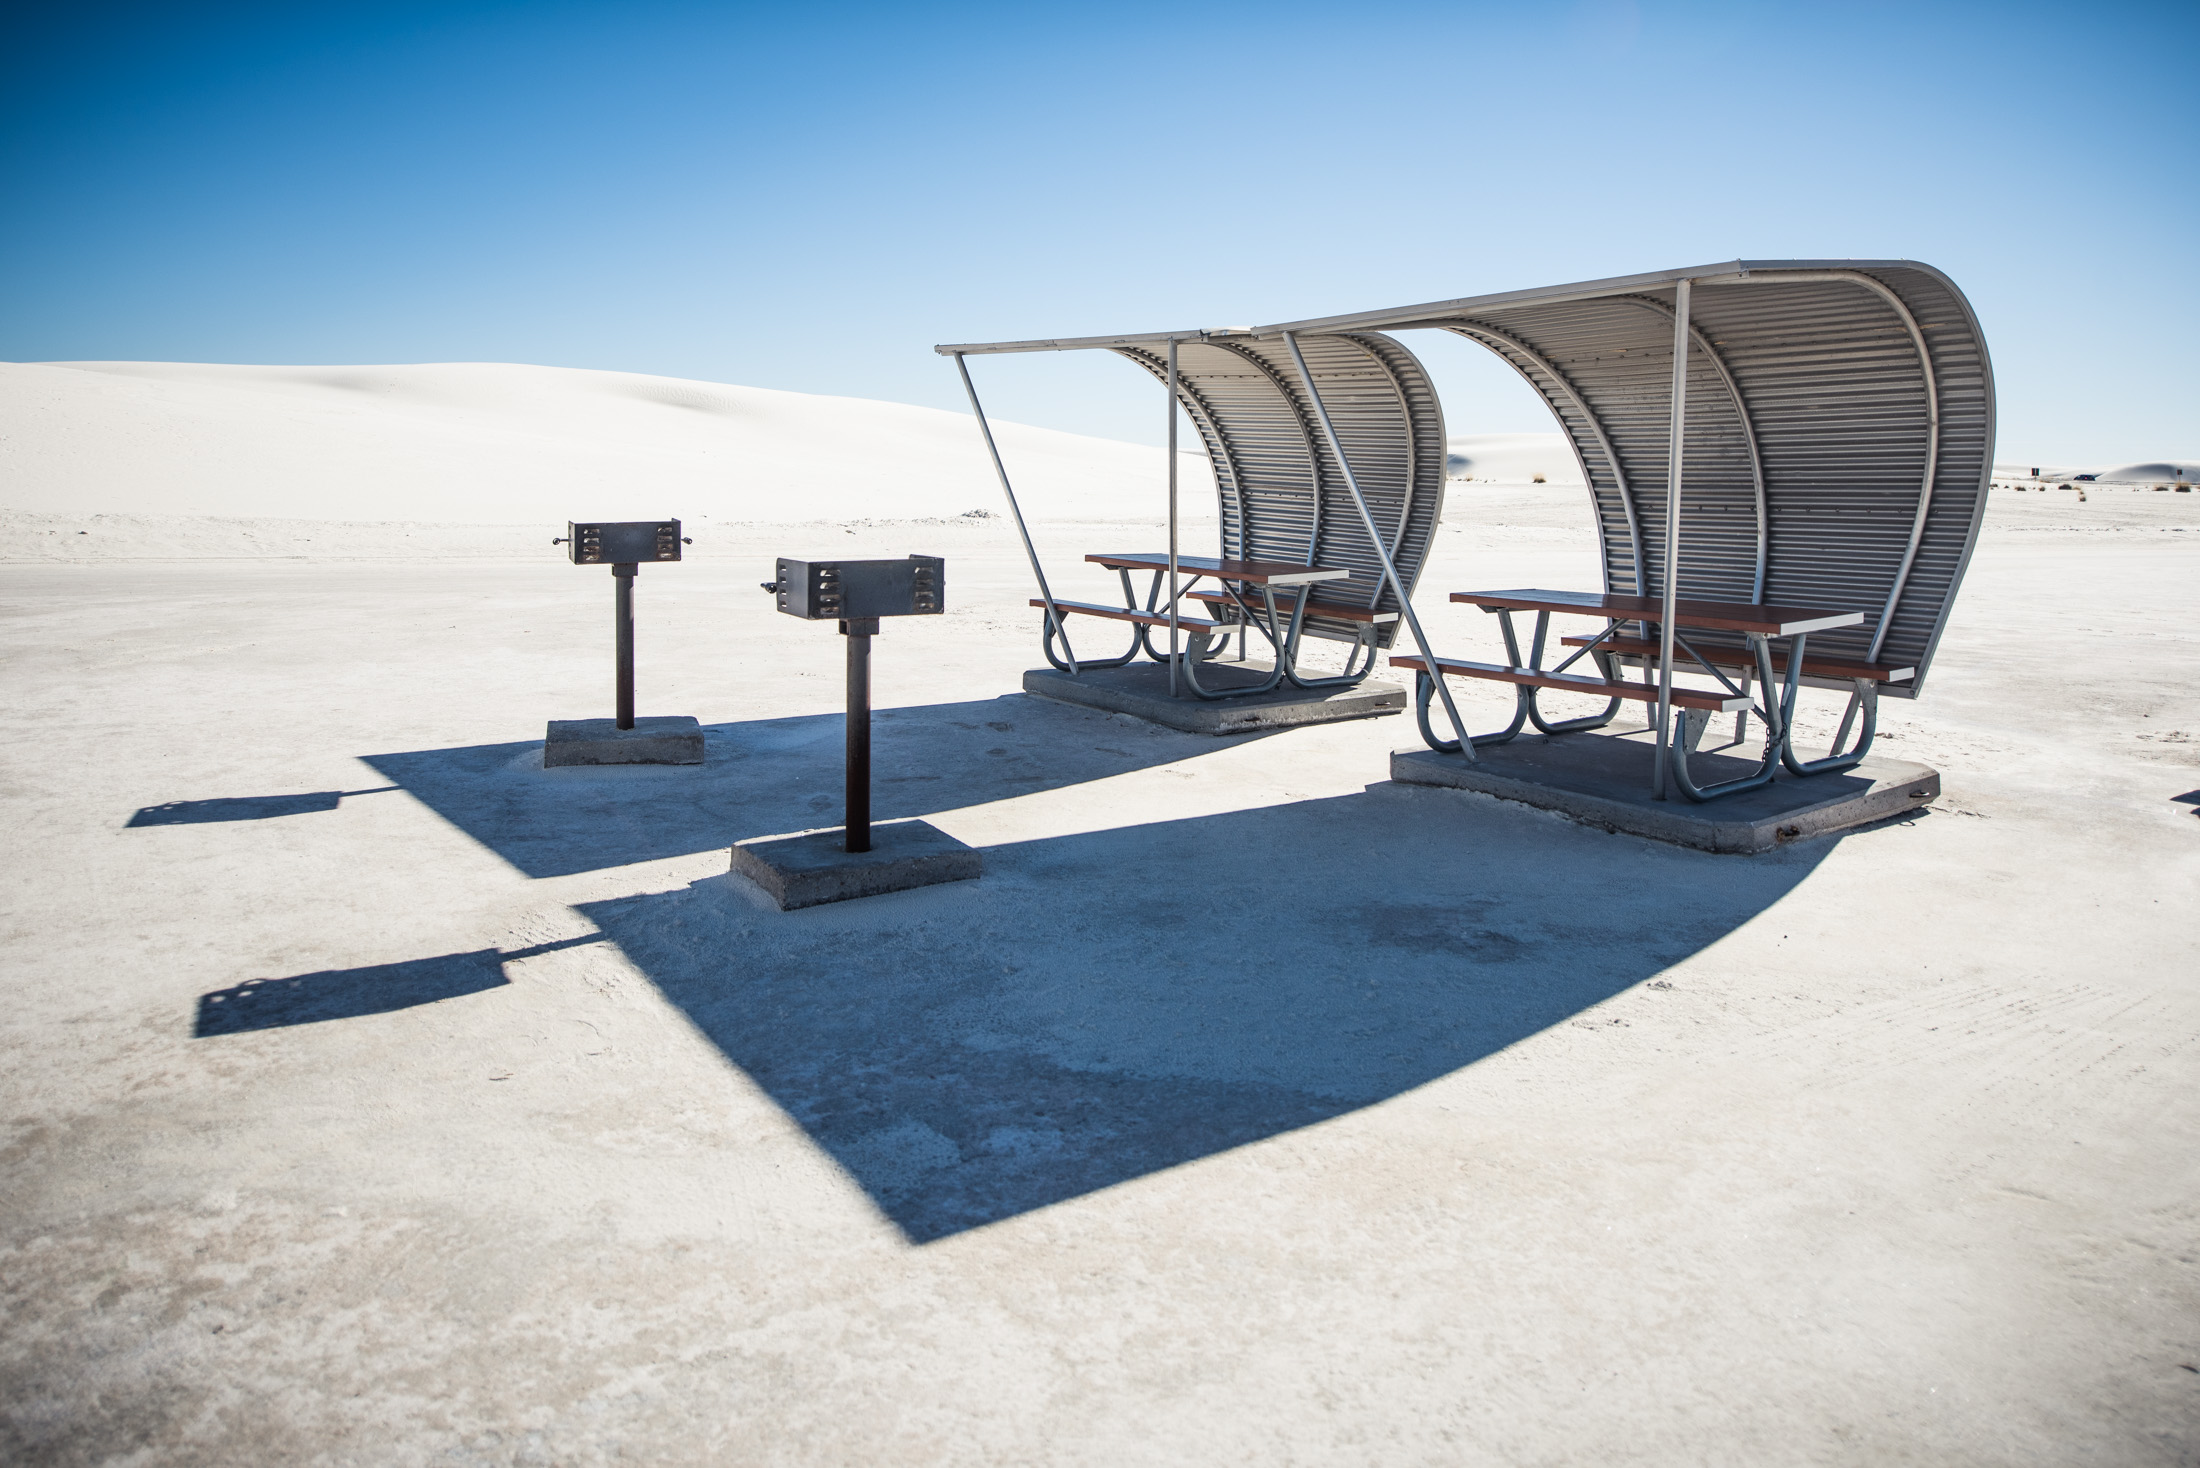 Picnic tables at White Sands National Monument, a place I thrilled to visit as a child.